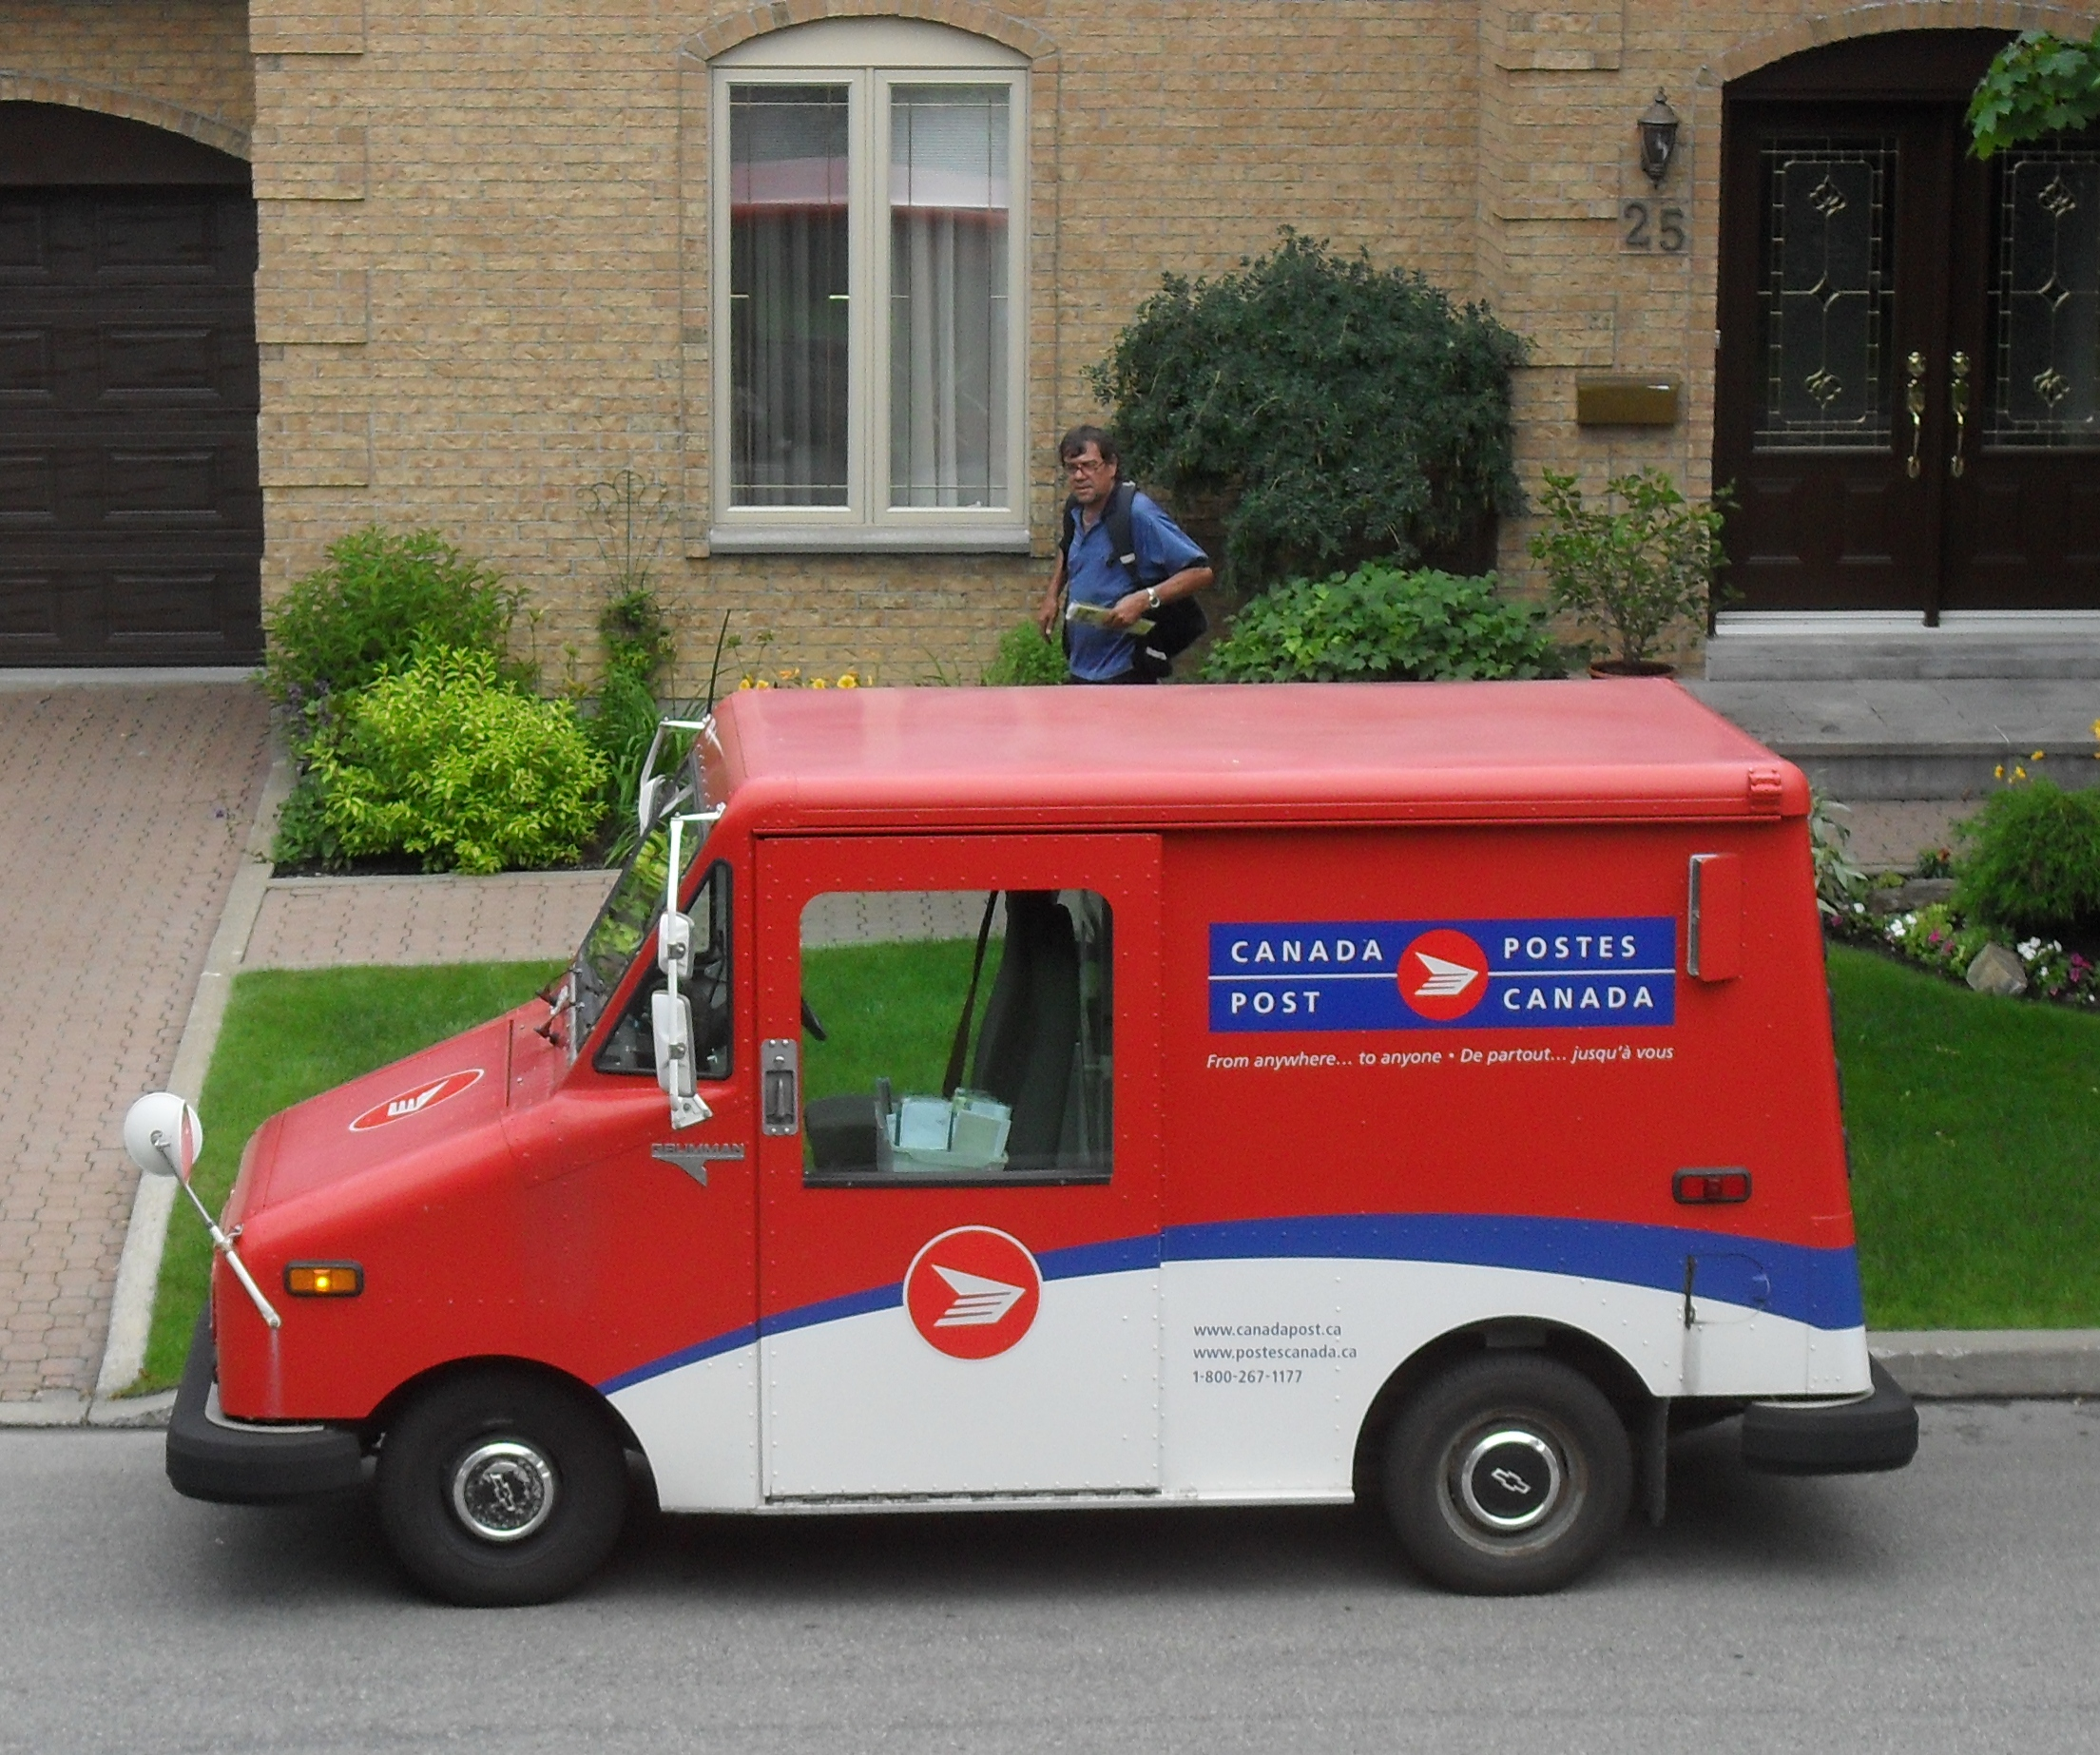 Canada Post Home Delivery to be Abandoned